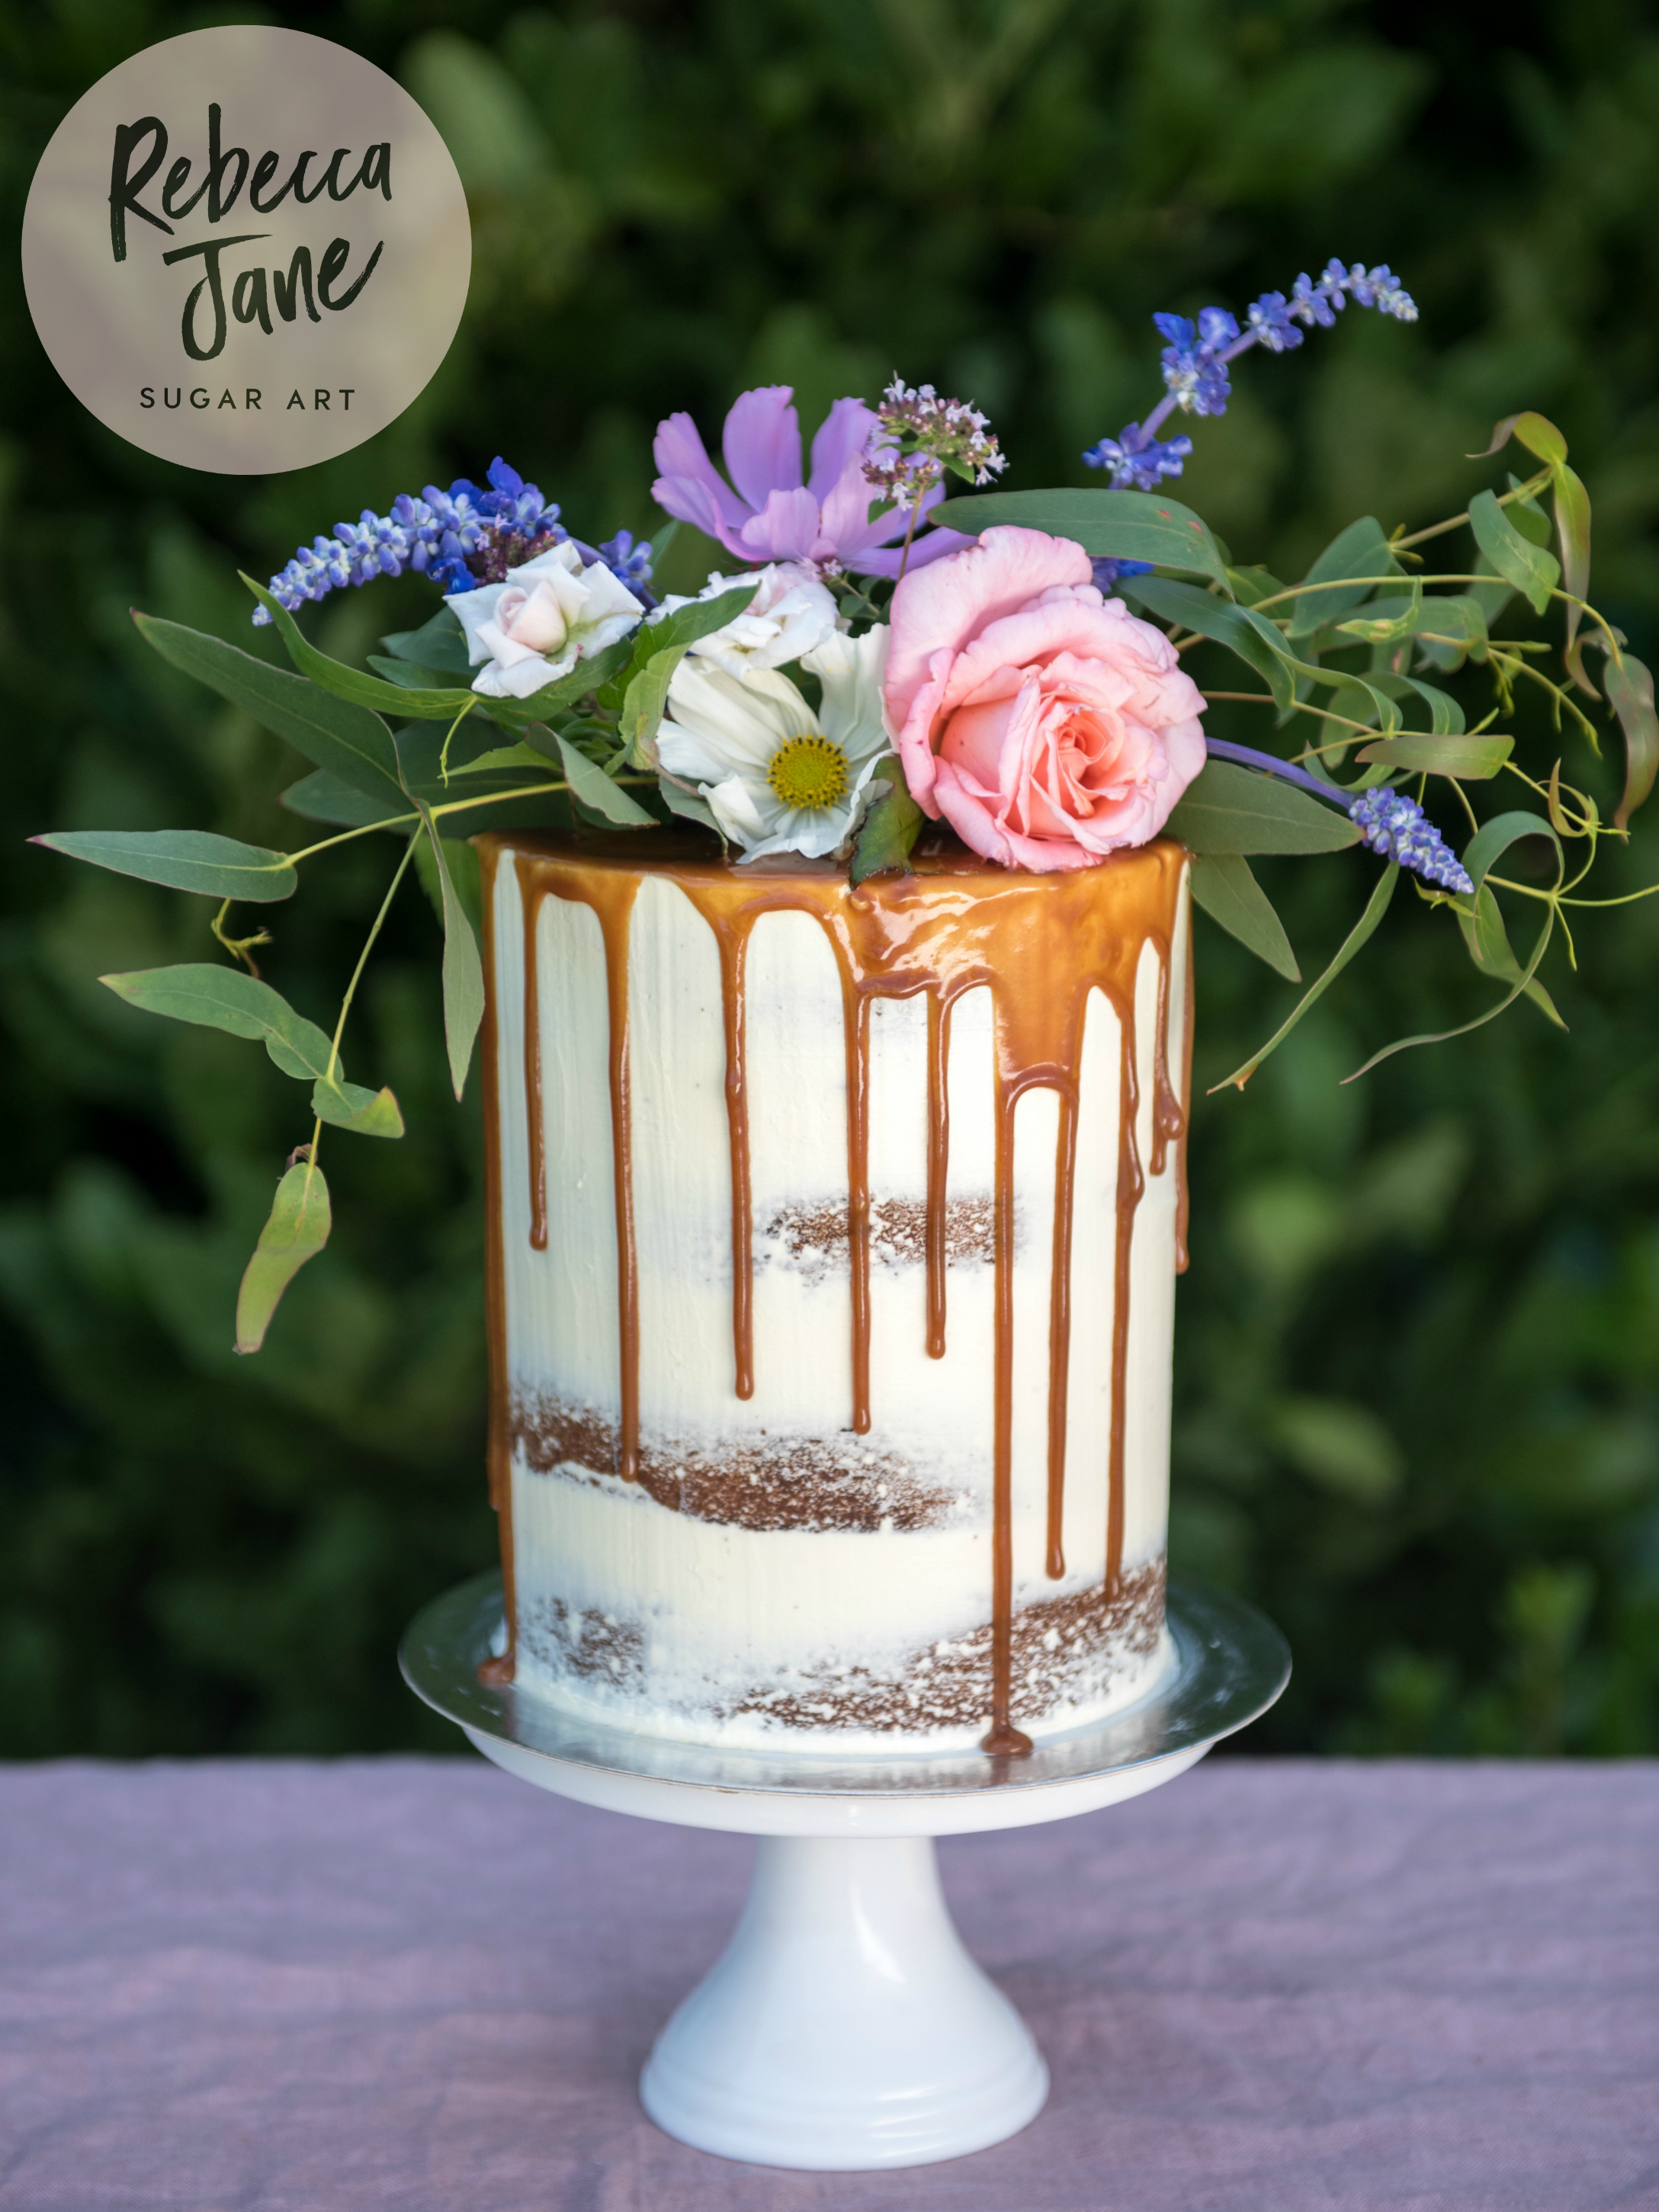 Rebecca Jane Sugar Art - semi-naked caramel drip floral wedding cake